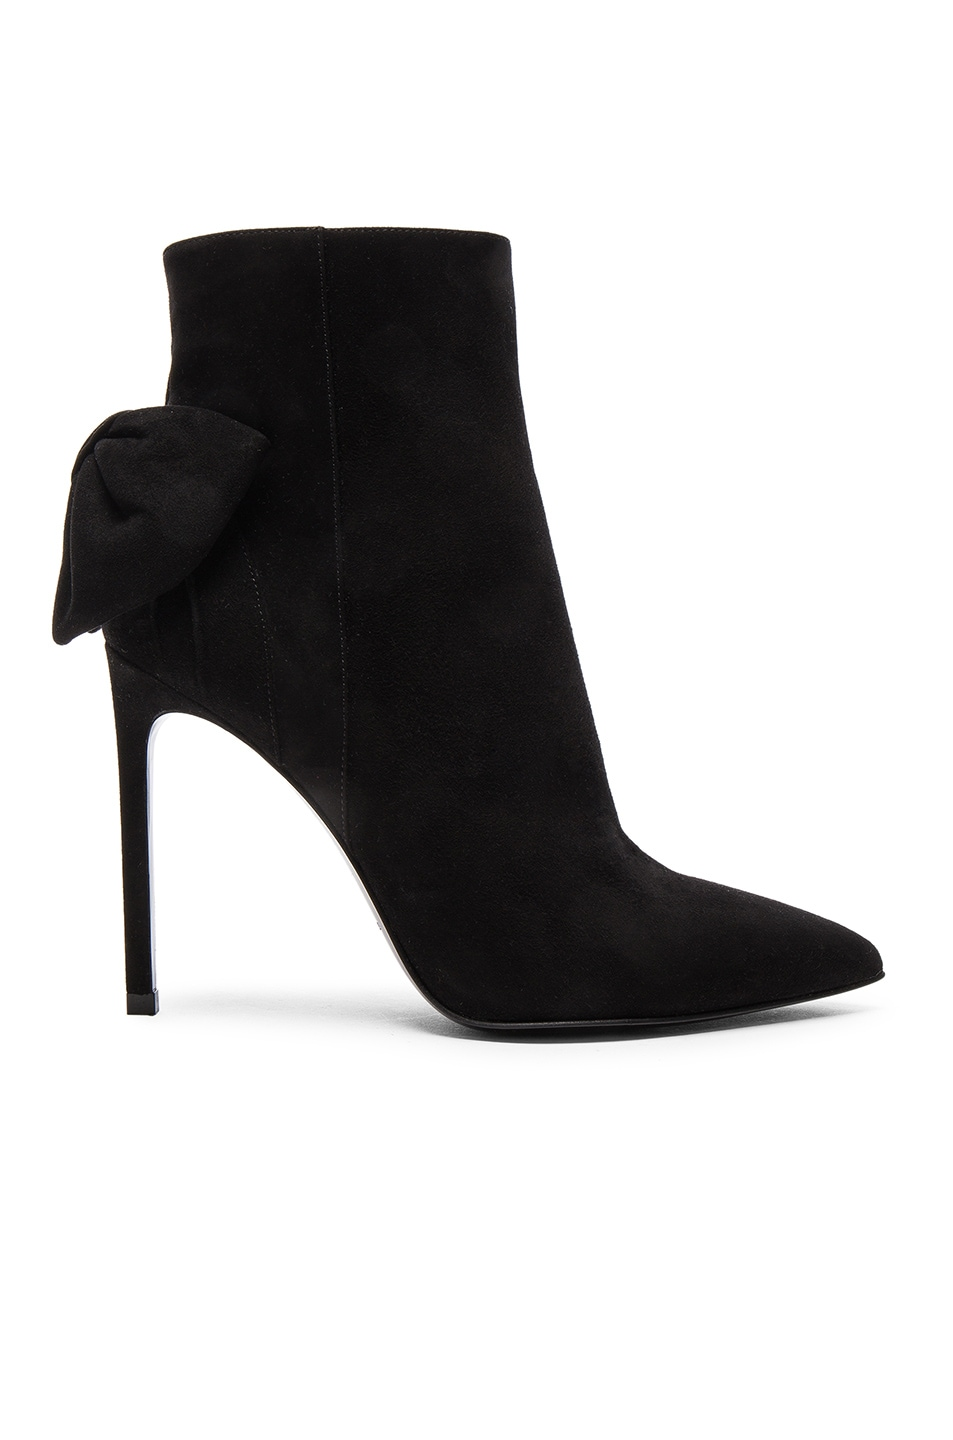 Image 1 of Saint Laurent Paris Skinny Bow Suede Booties in Black